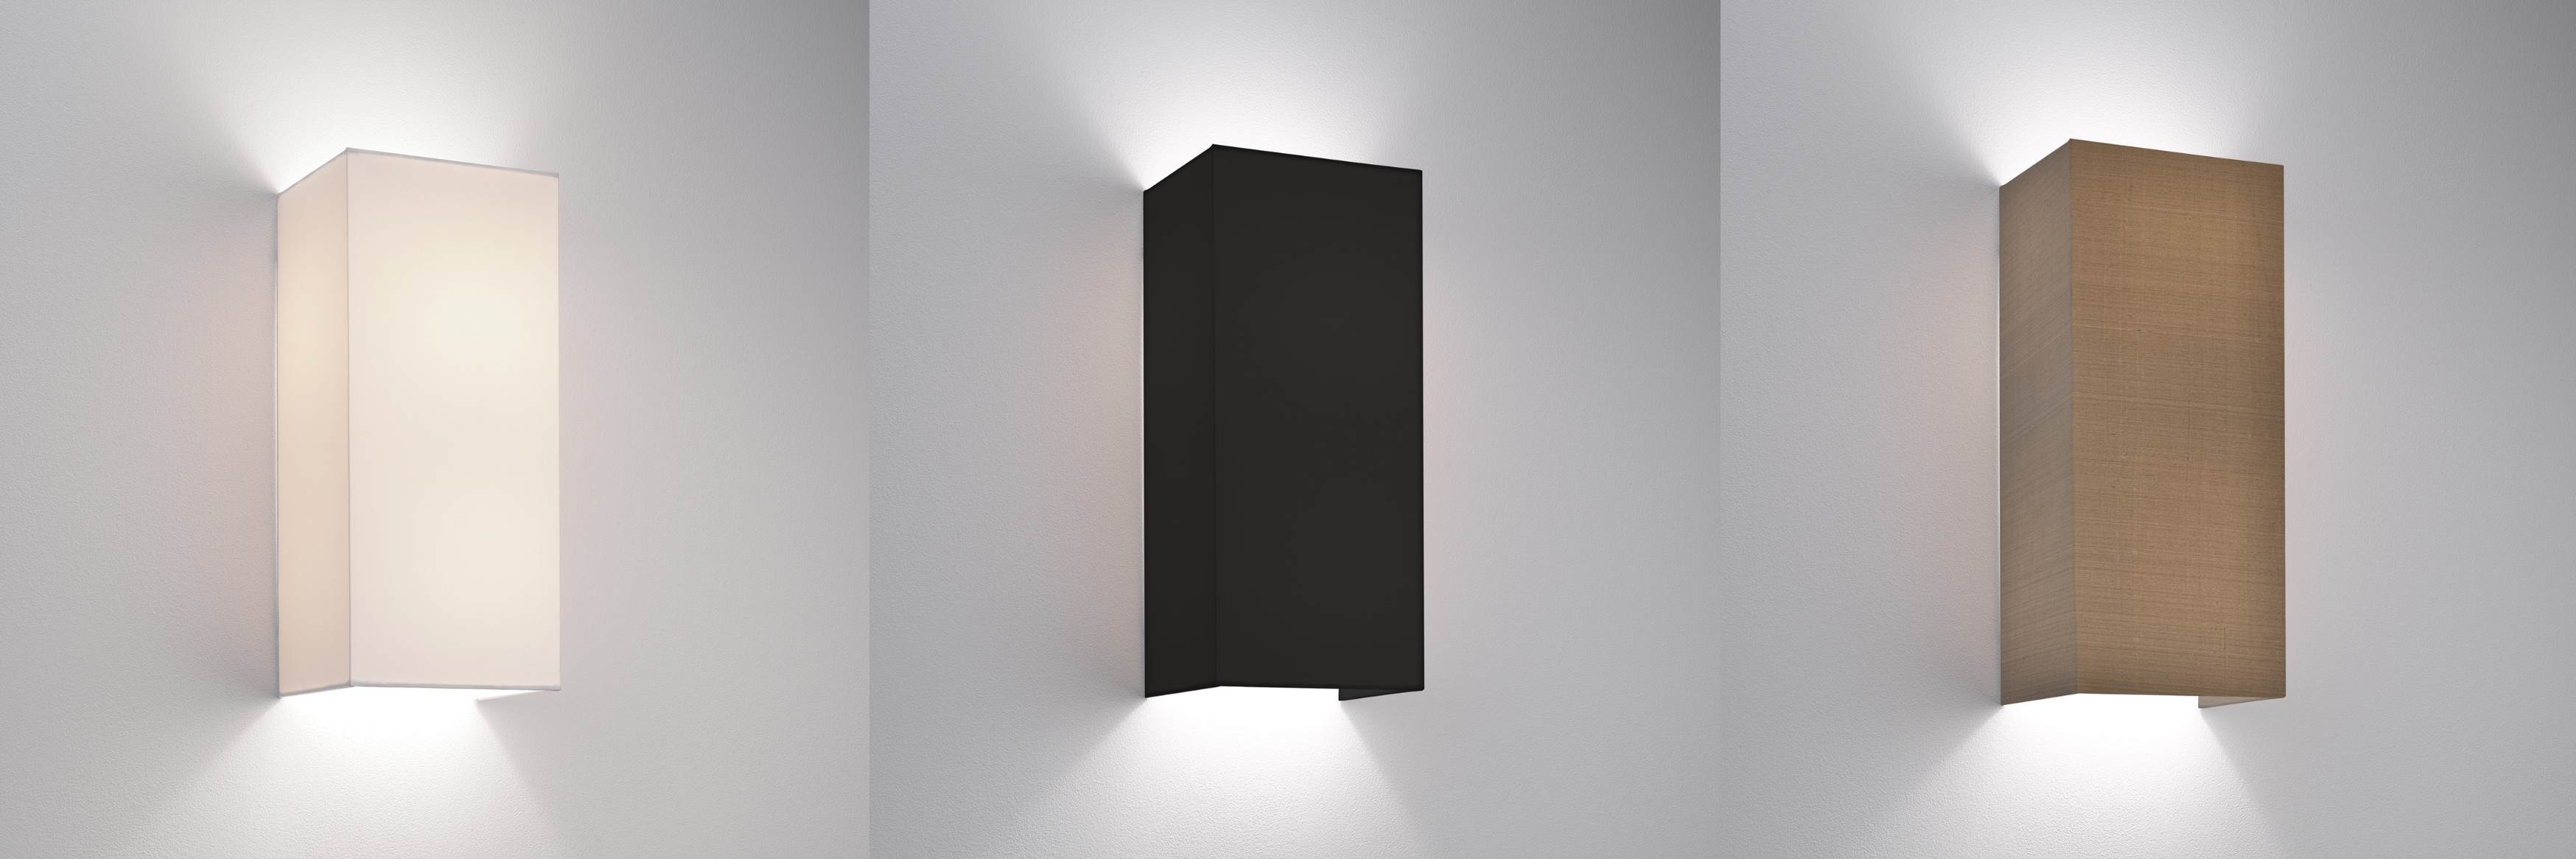 astro chuo 380 fabric wall light shade 2 60w e27 white black oyster ebay